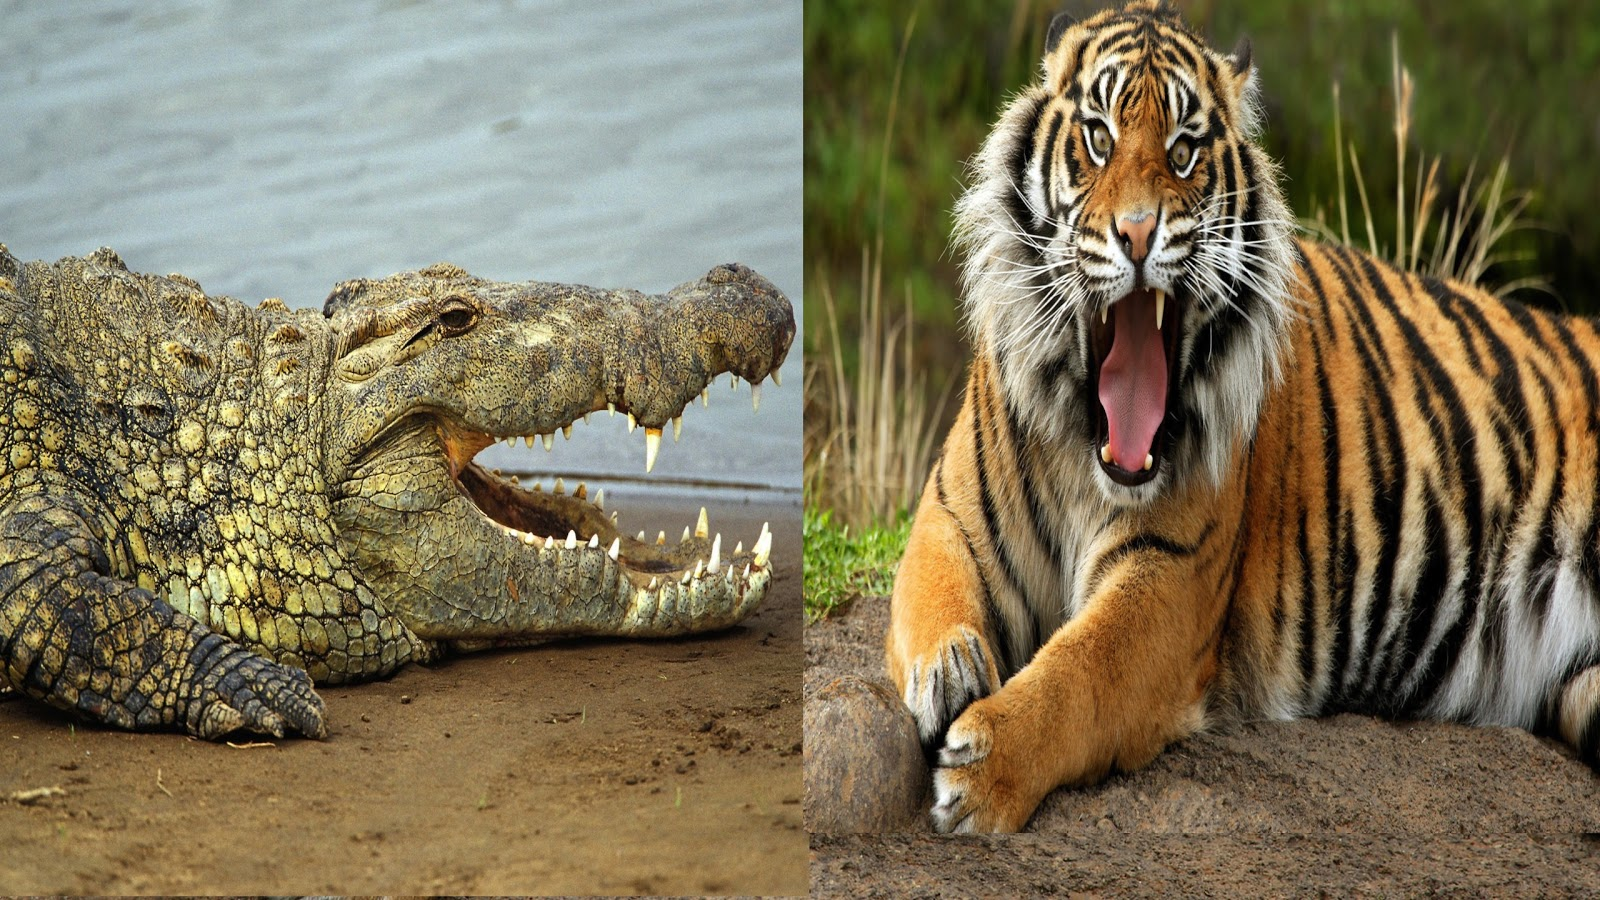 Saltwater crocodile vs tiger - photo#1